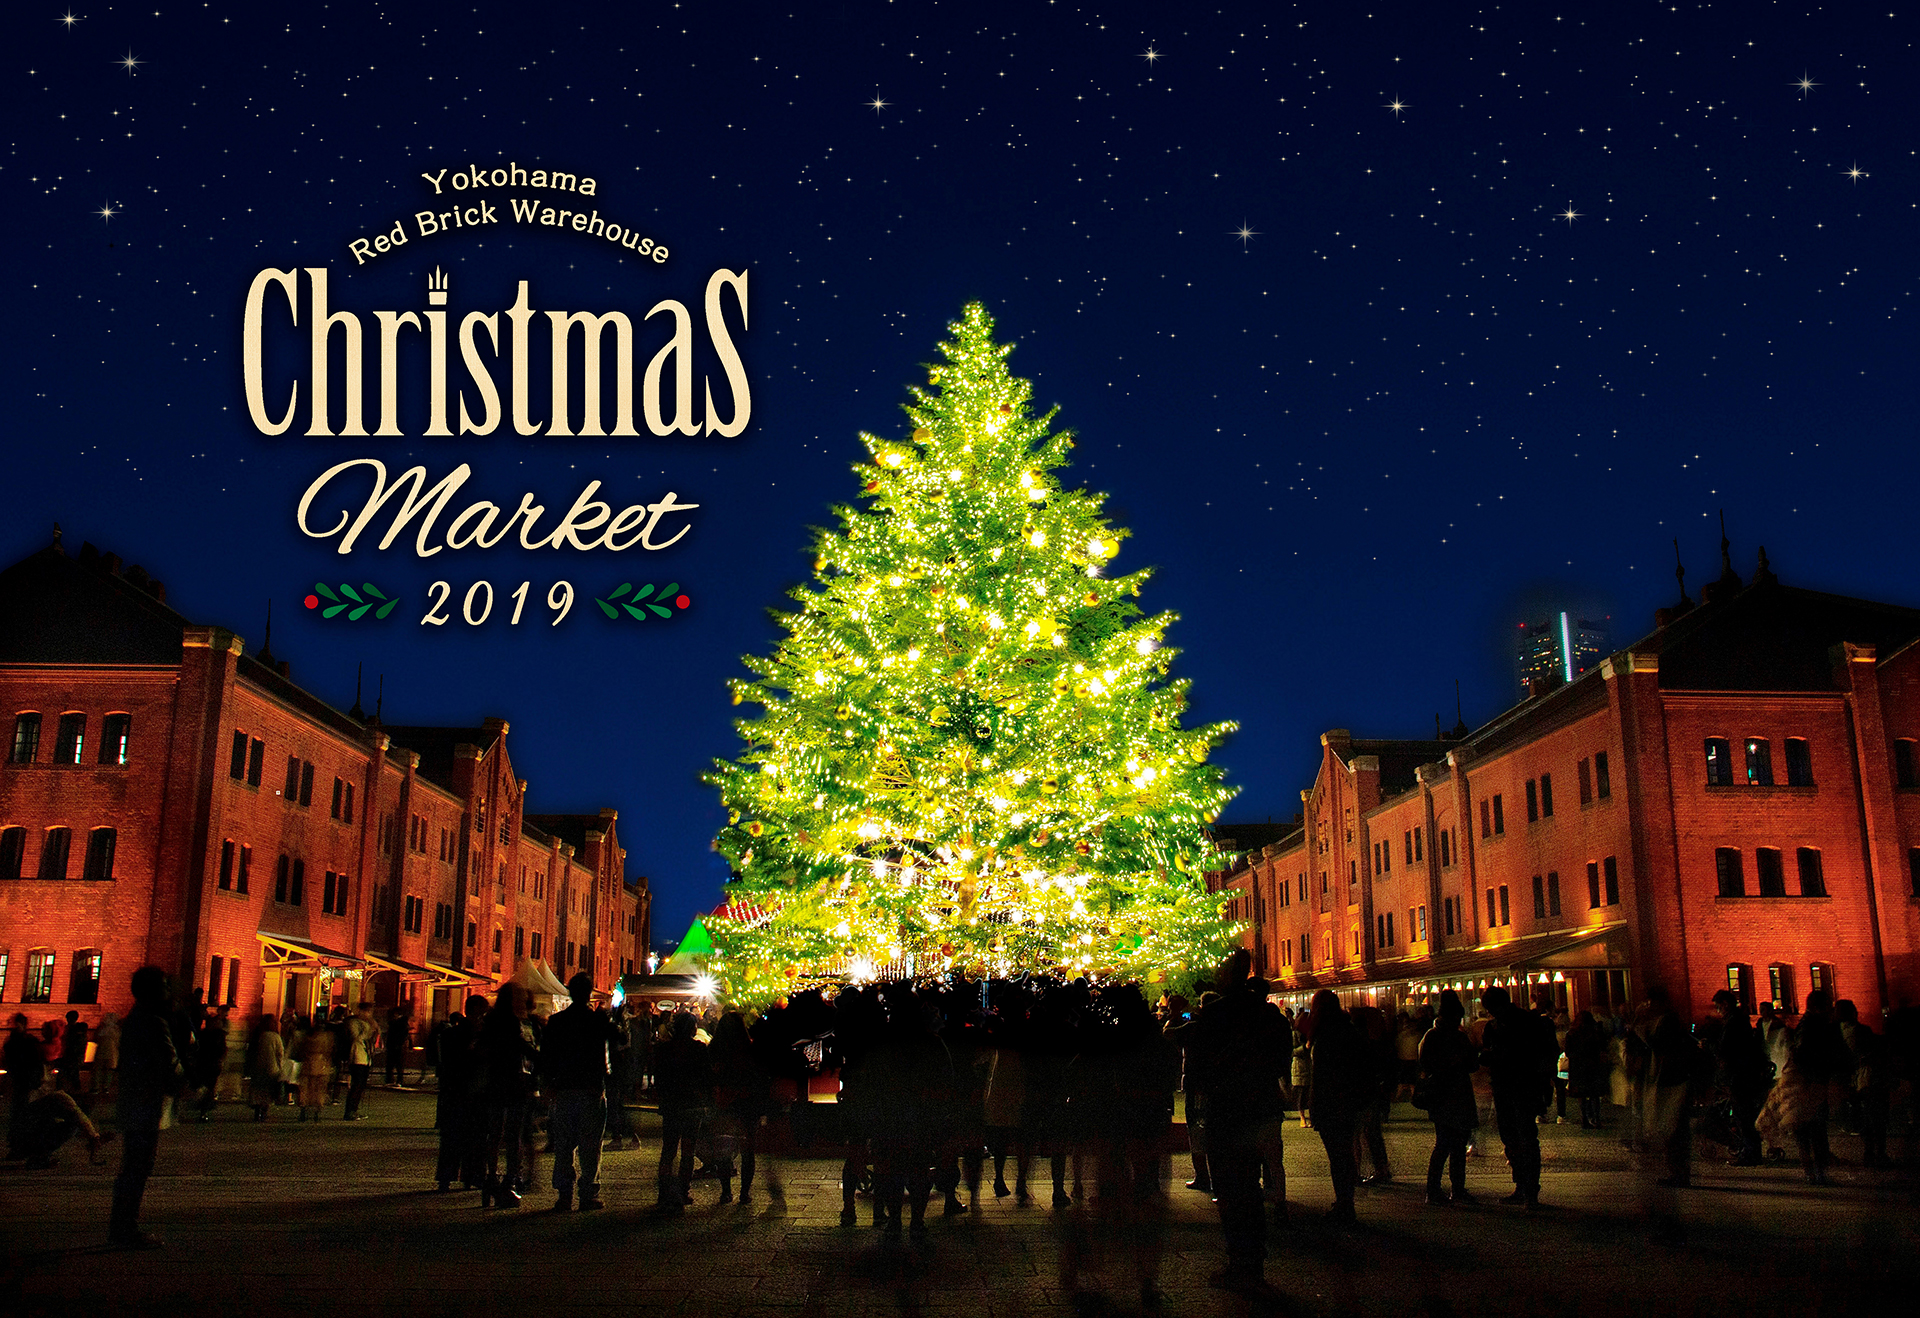 Christmas Market in 横浜赤レンガ倉庫メインビジュアル